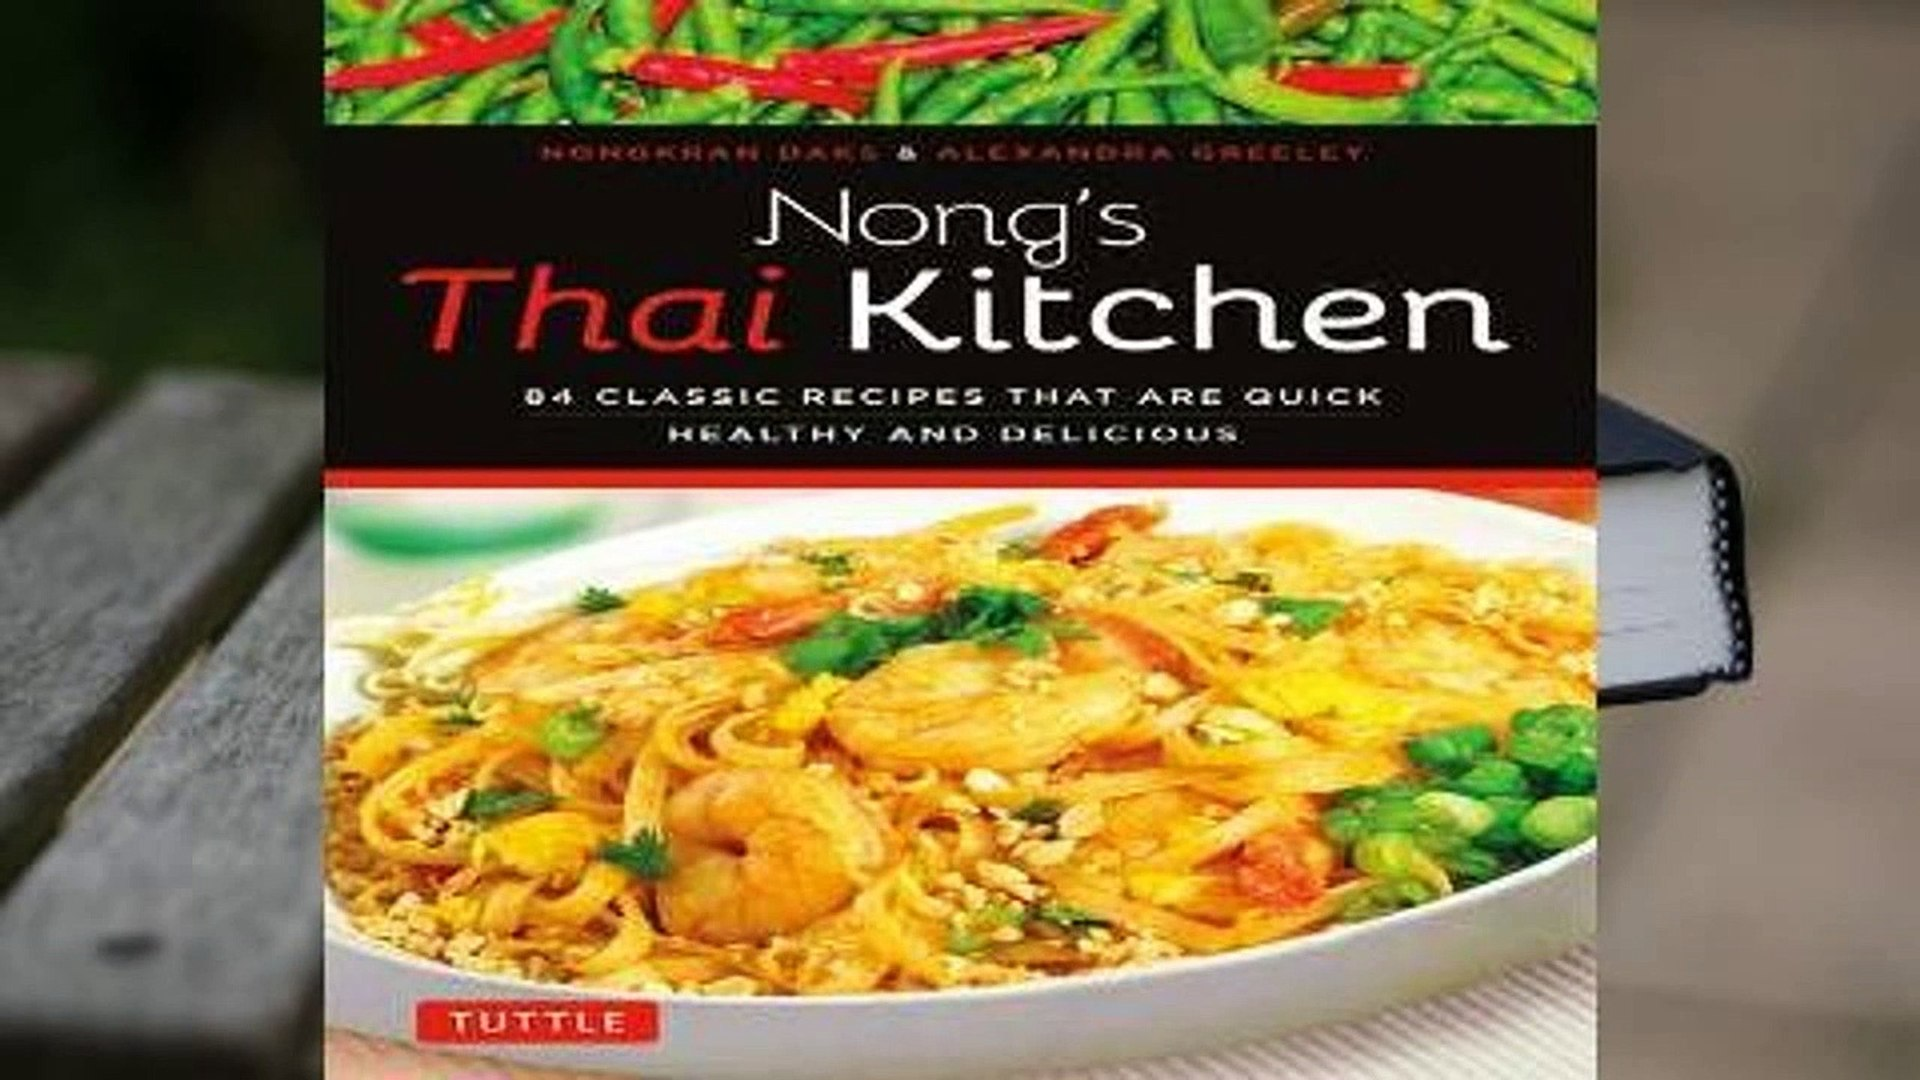 Nongs Thai Kitchen Healthy and Delicious 84 Classic Recipes that are Quick